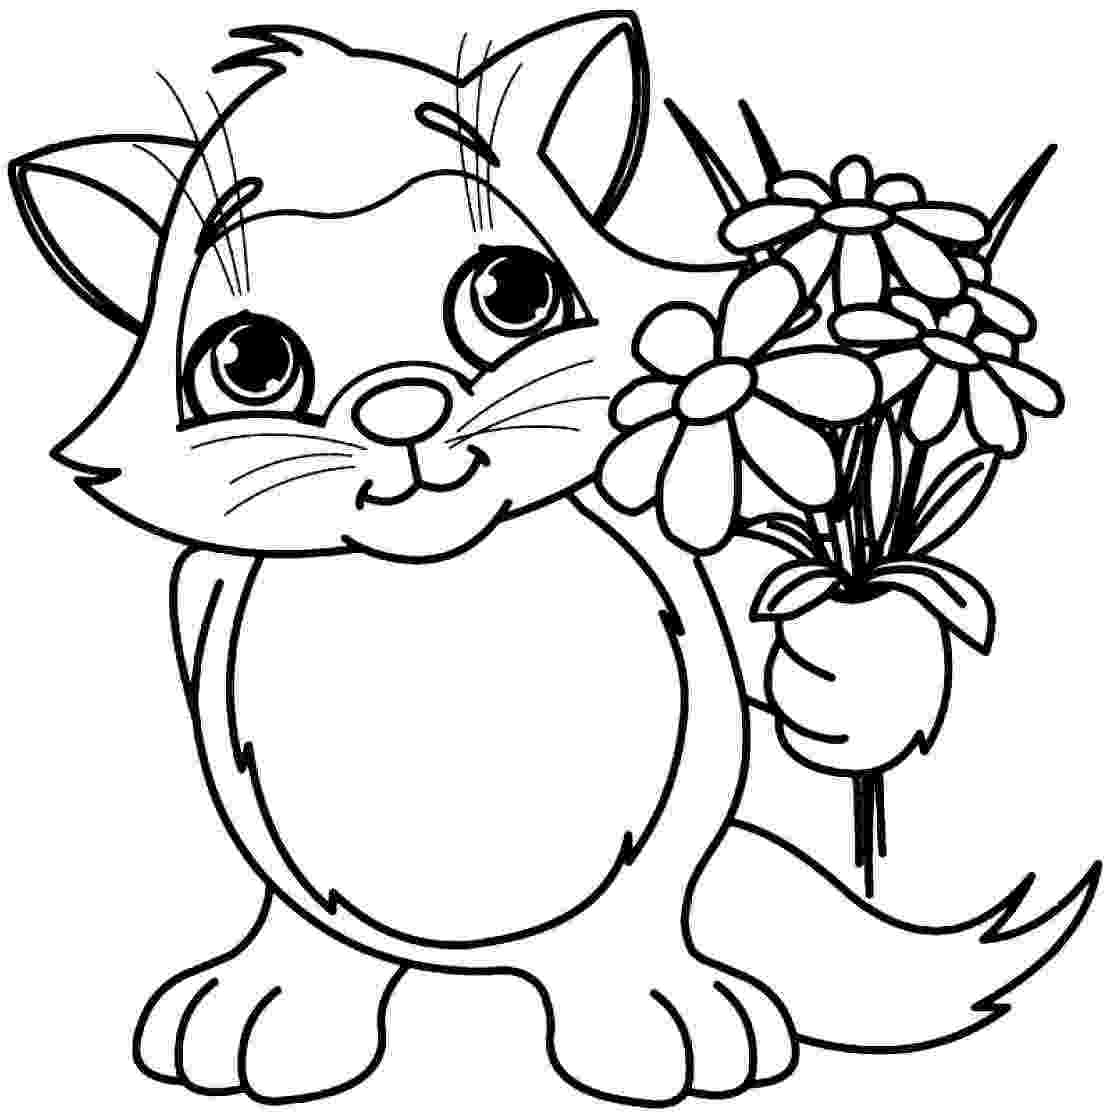 flowers printable coloring pages free printable flower coloring pages for kids cool2bkids coloring flowers printable pages